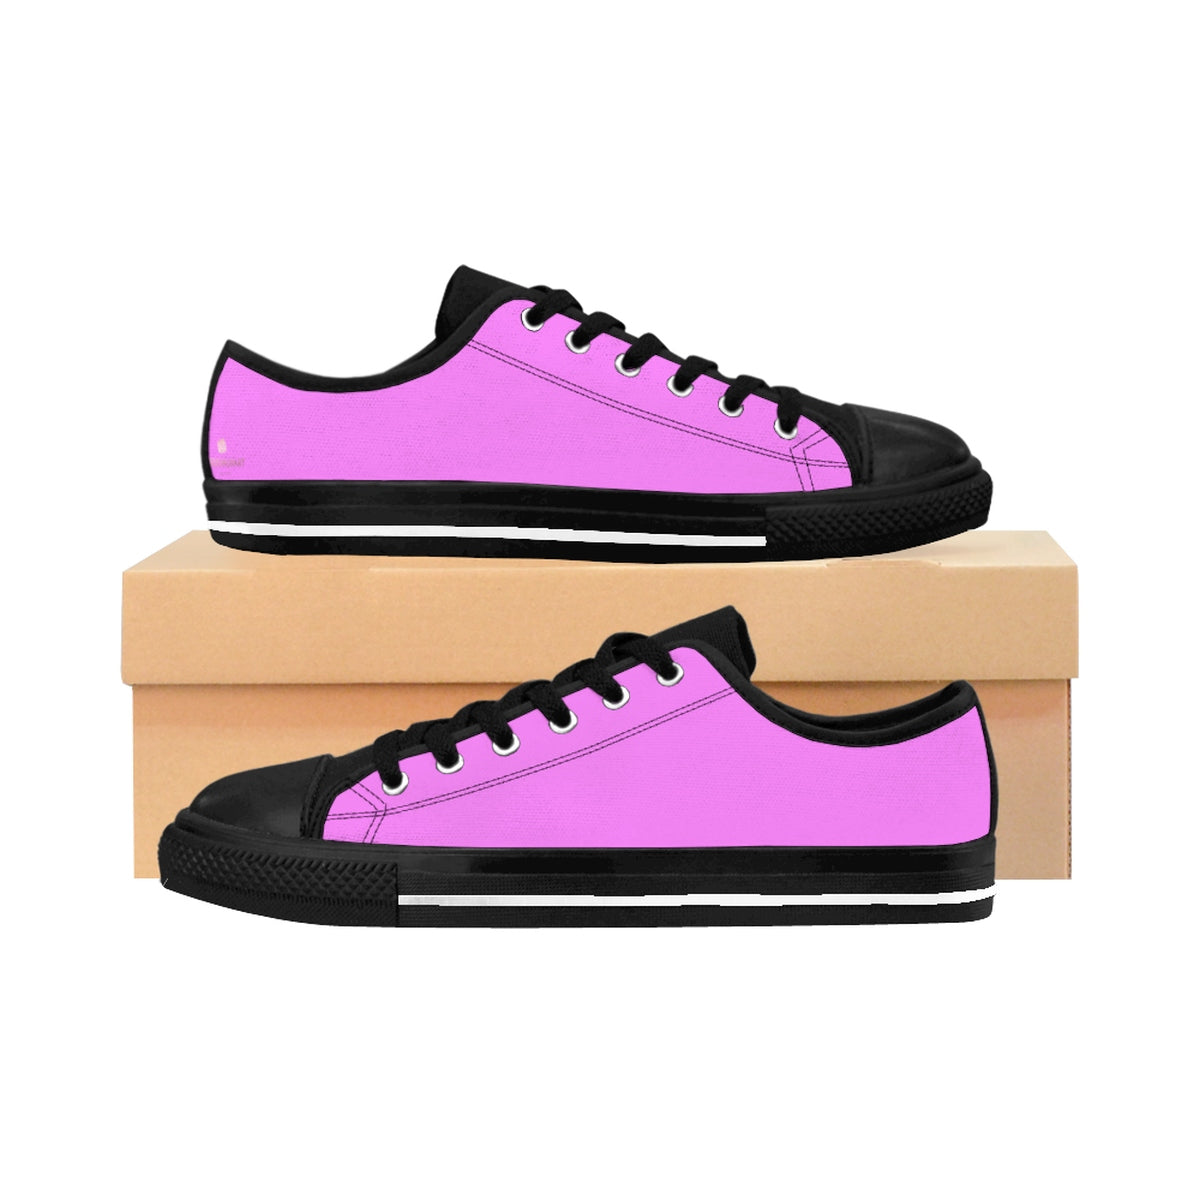 Pink Cotton Candy Solid Color Designer Low Top Women's Sneakers (US Size: 6-12)-Women's Low Top Sneakers-US 10-Heidi Kimura Art LLC